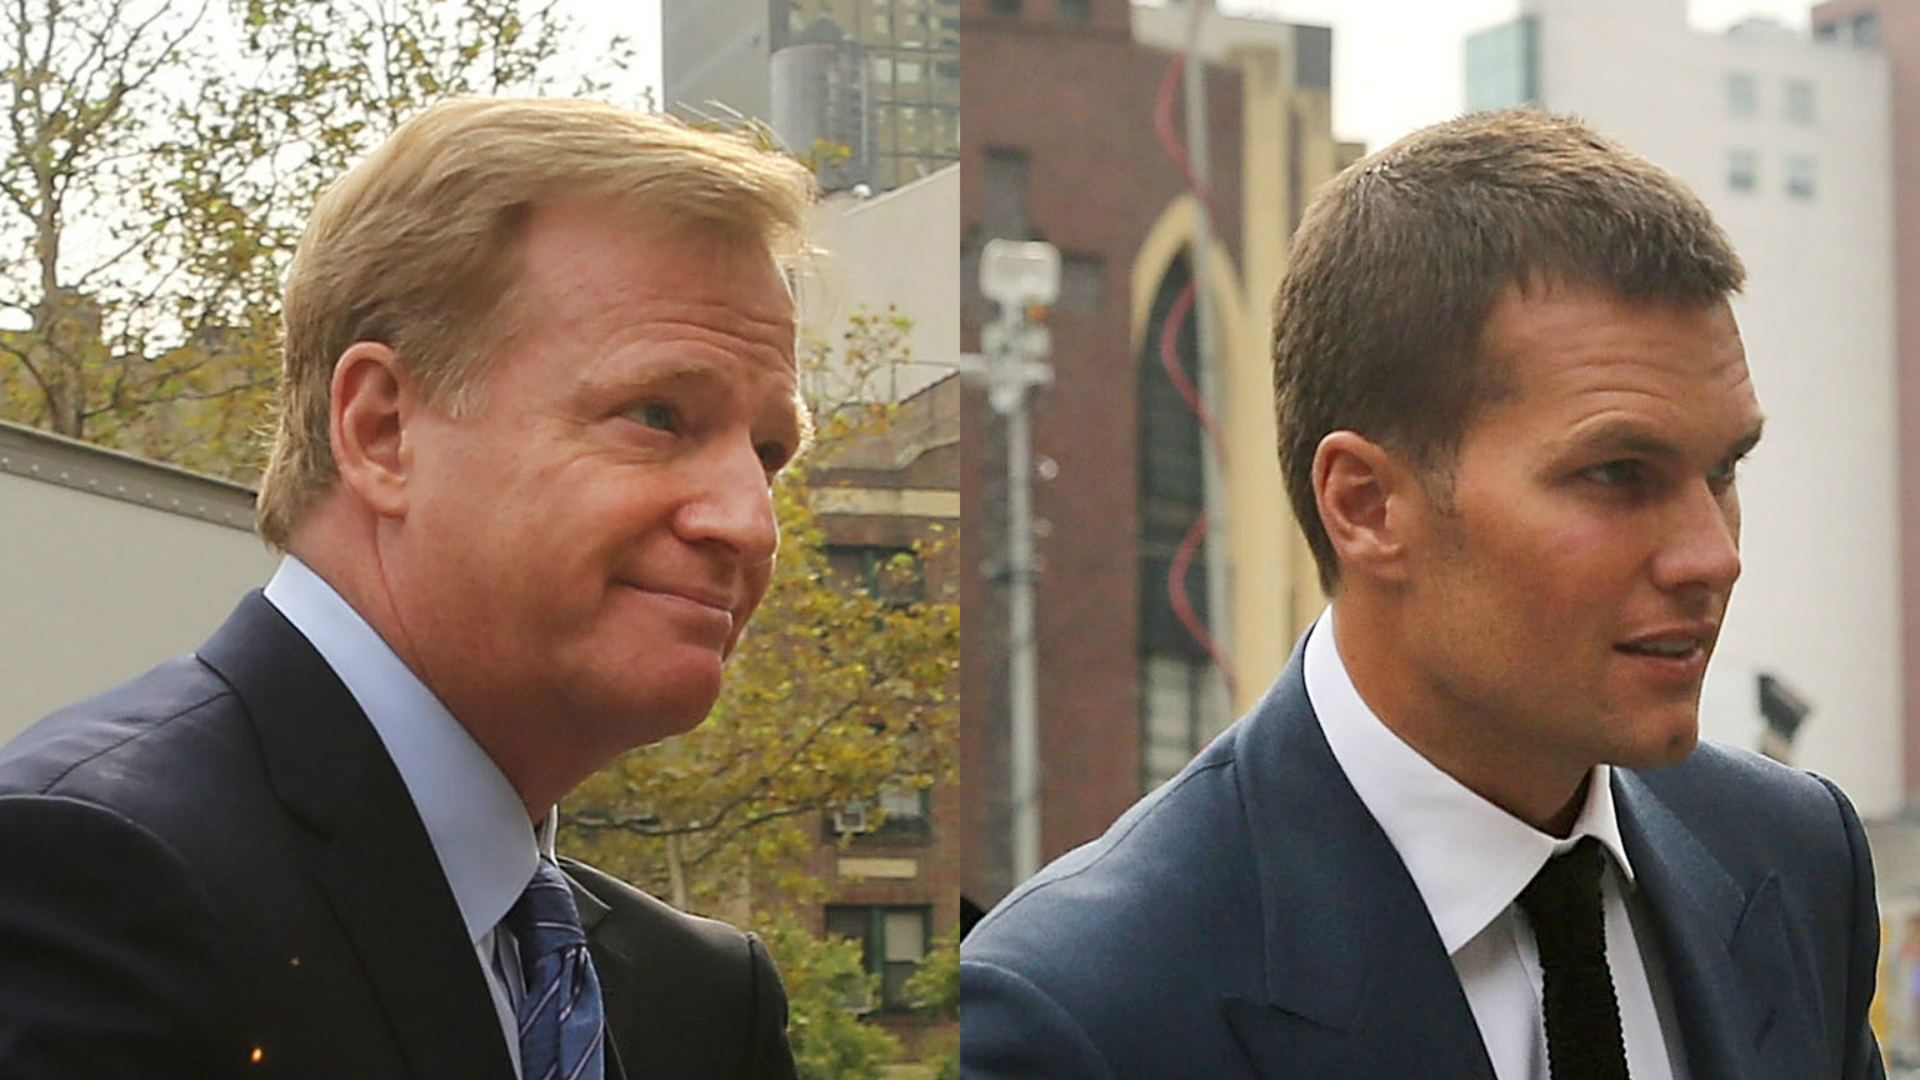 DeflateGate exposed Roger Goodell as unfit to serve his office